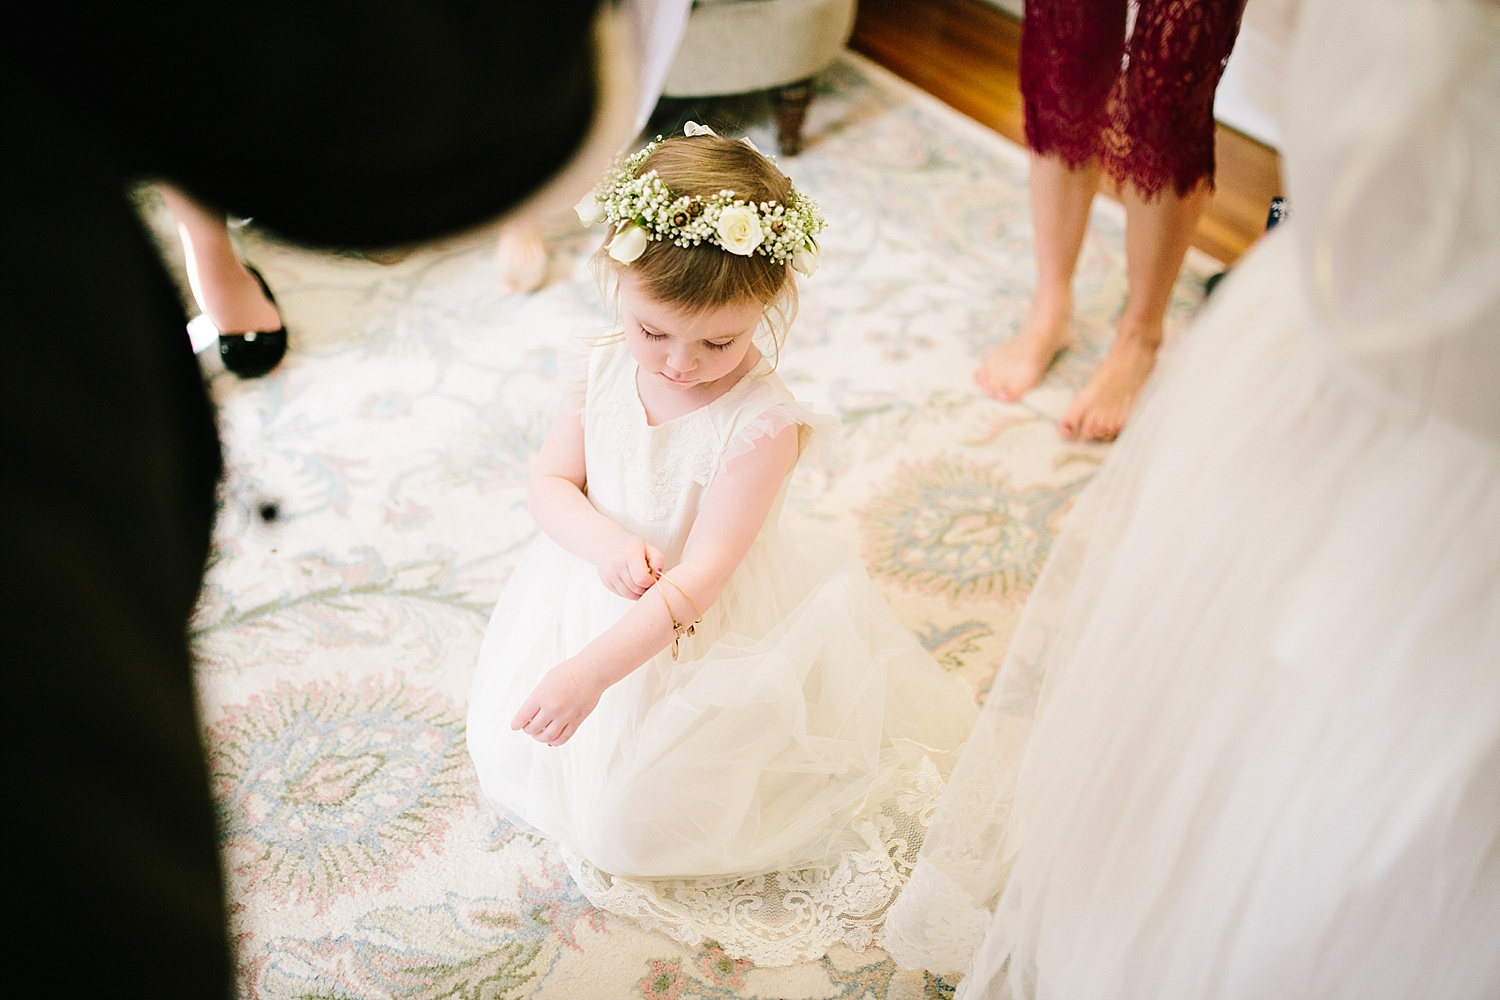 jessdavid_barnonbridge_phoenixville_winter_wedding_image_023.jpg